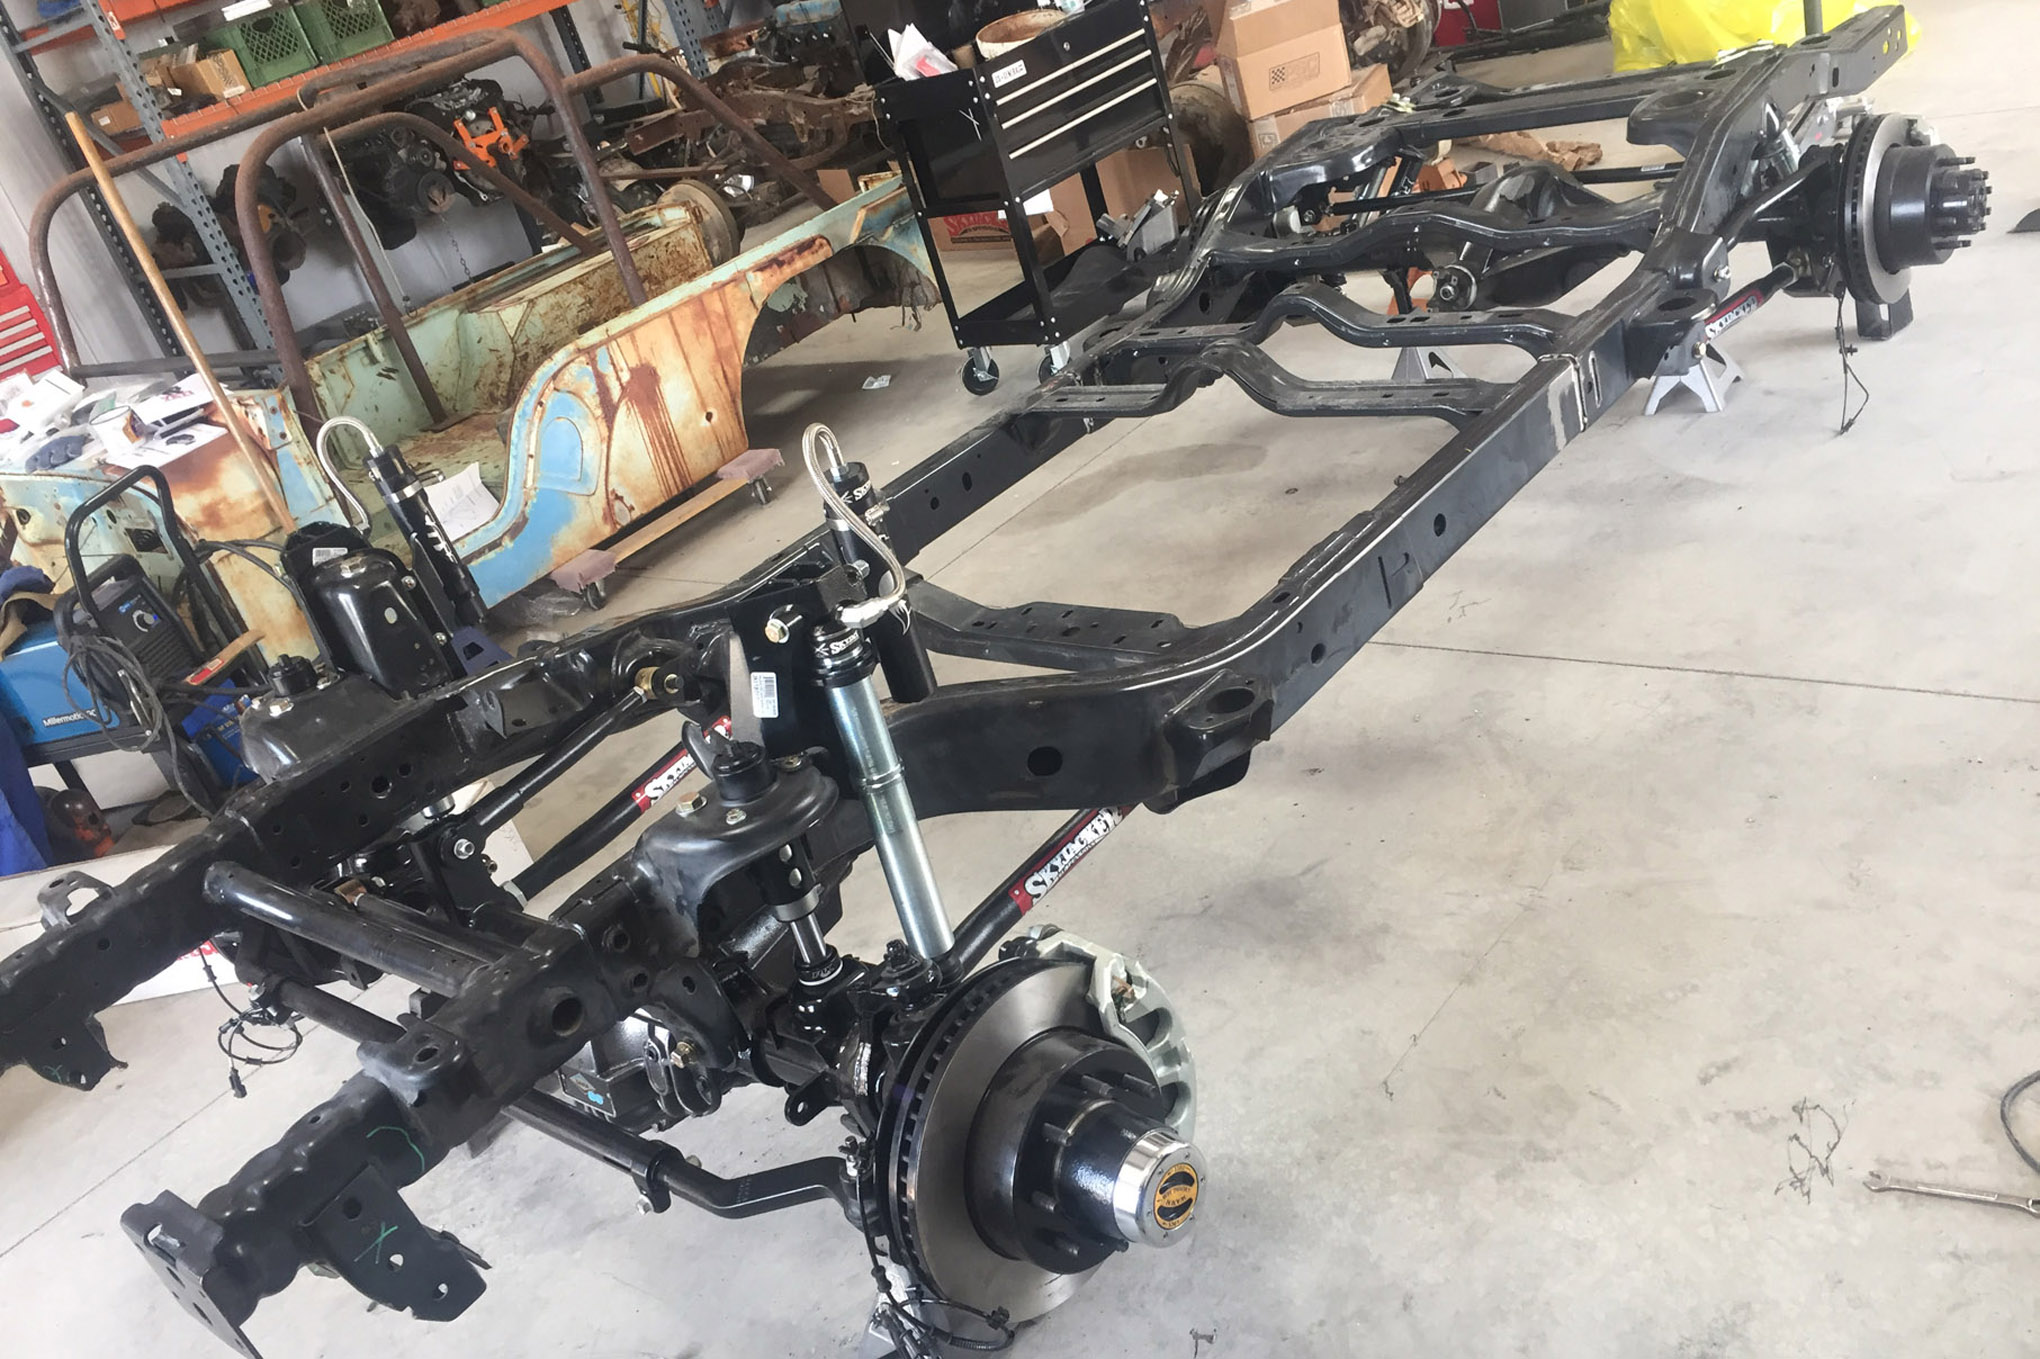 uacj 6d part 2 skyjacker suspension and jk frame setup